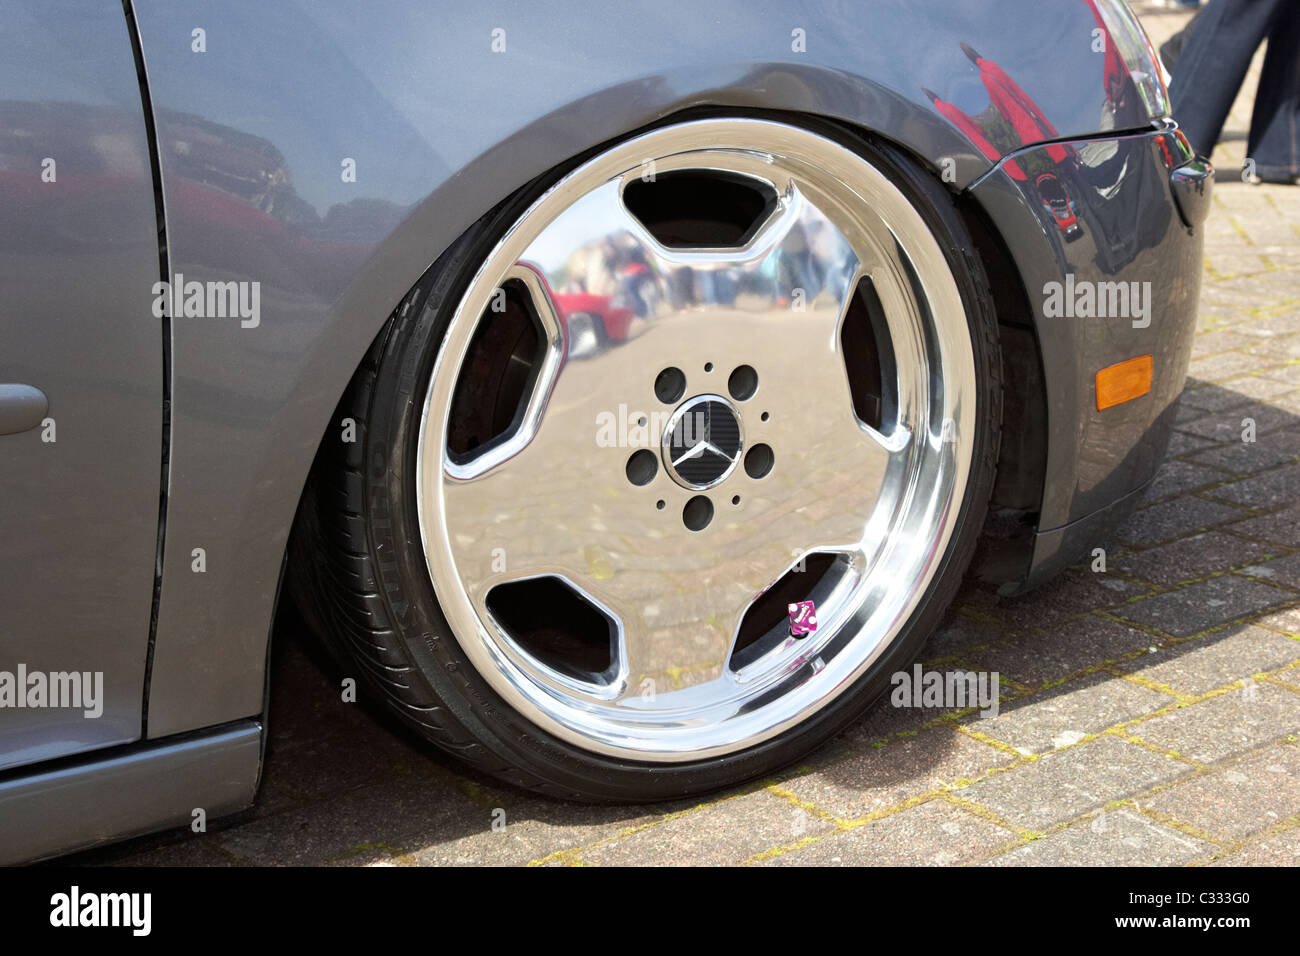 chrome mercedes wheel on a lowered suspension volkswagen golf with resultant wing damage at a modified car show Stock Photo